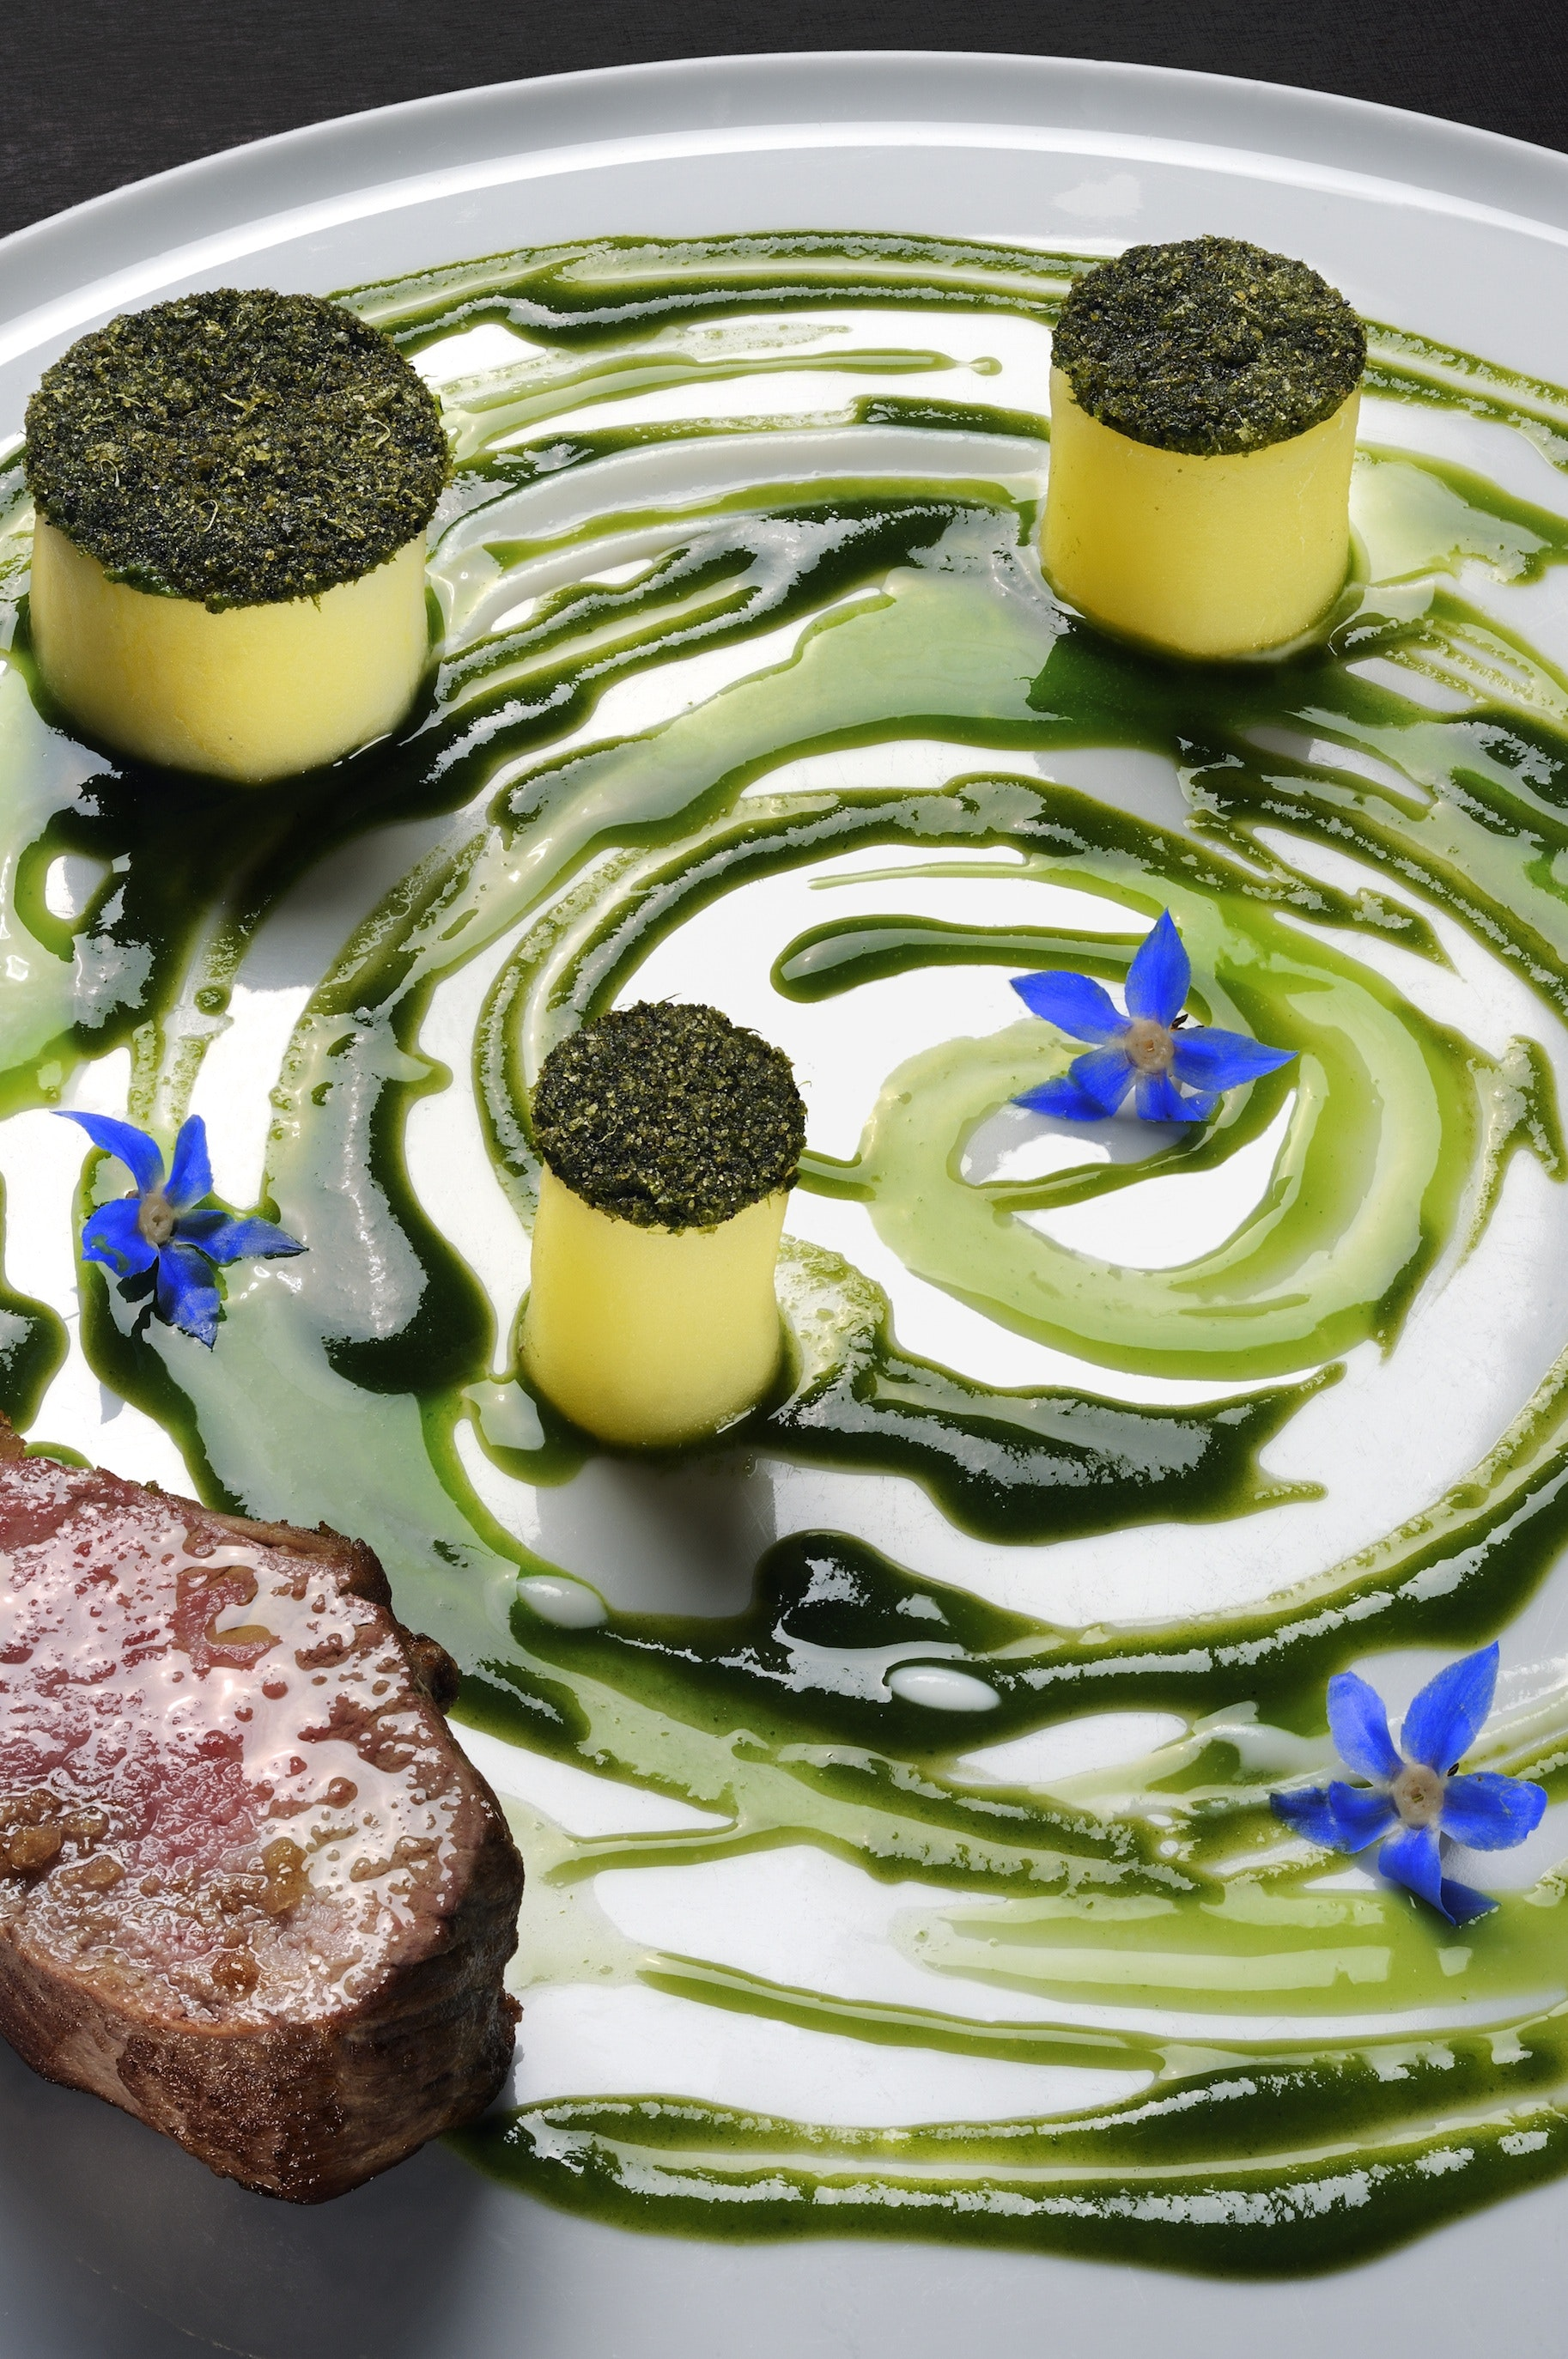 Delights of Osteria Francescana